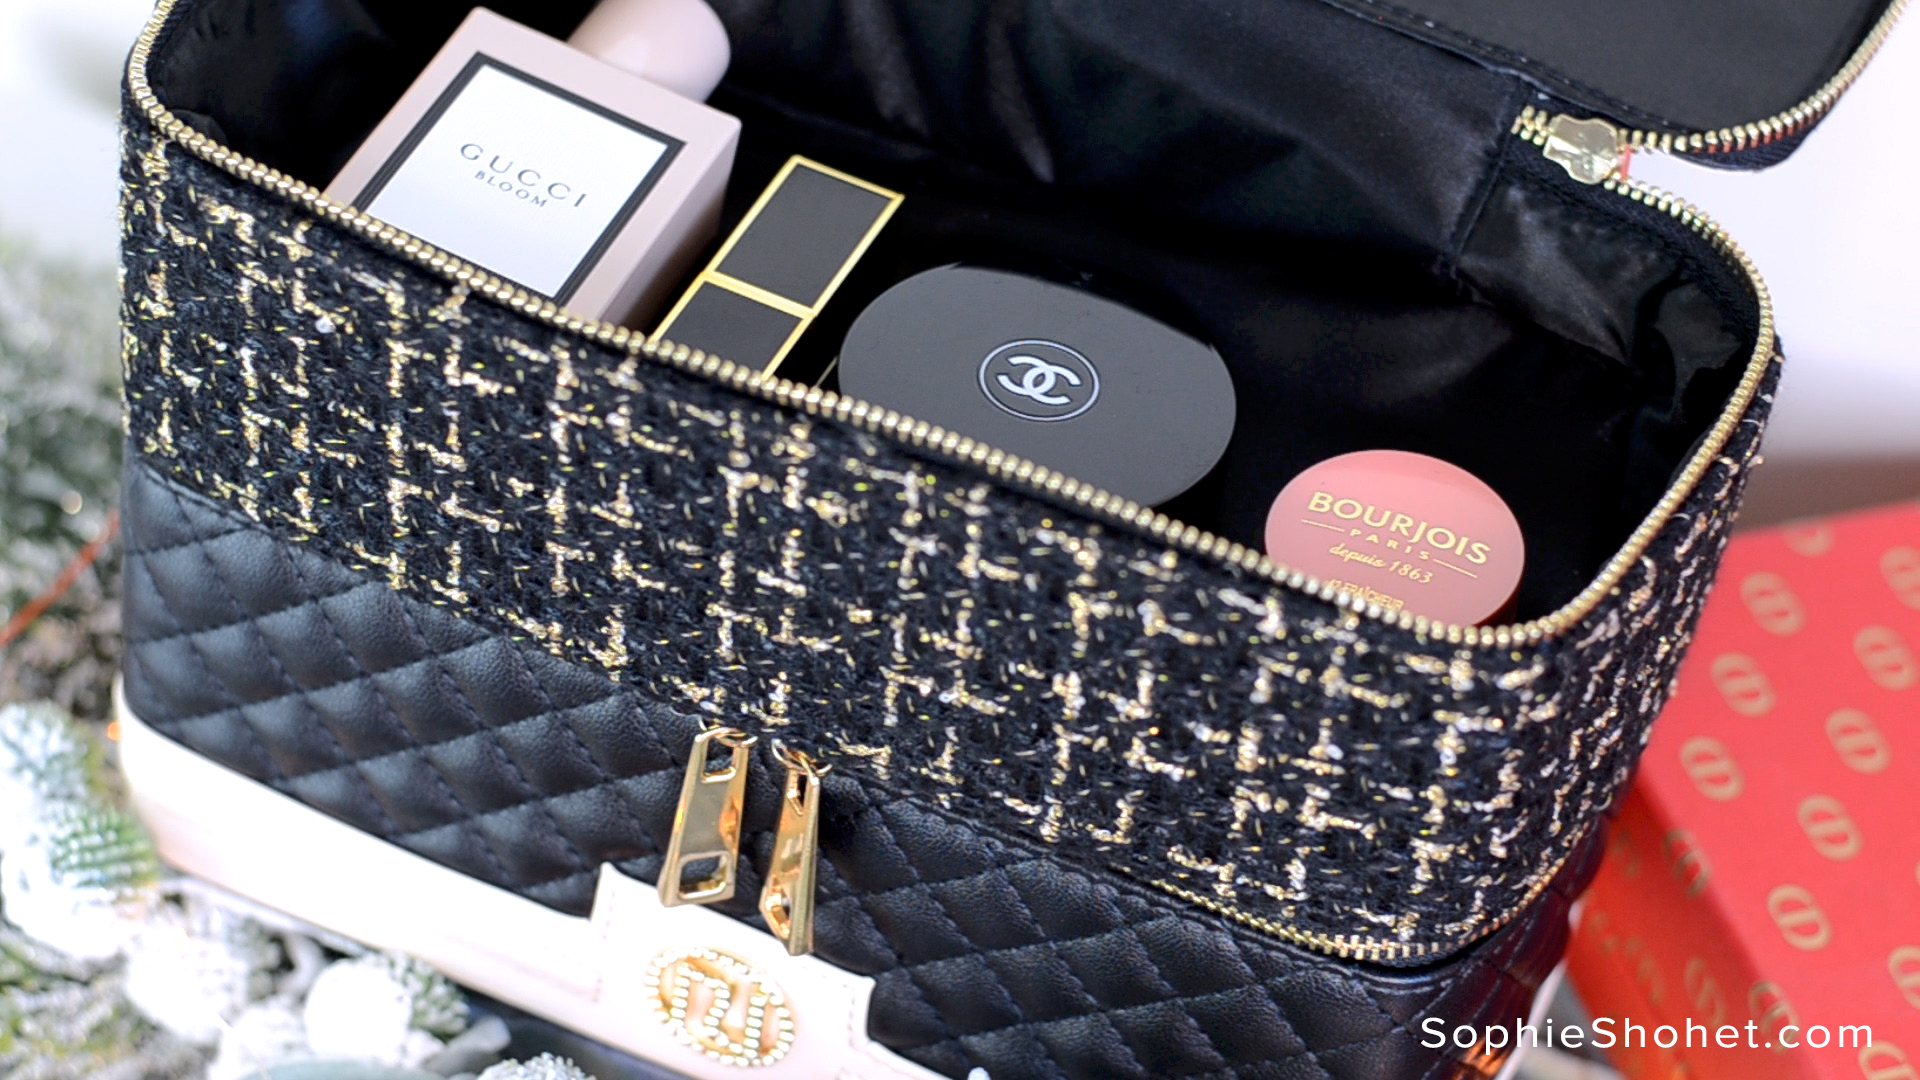 Chanel Inspired Vanity Case from River Island